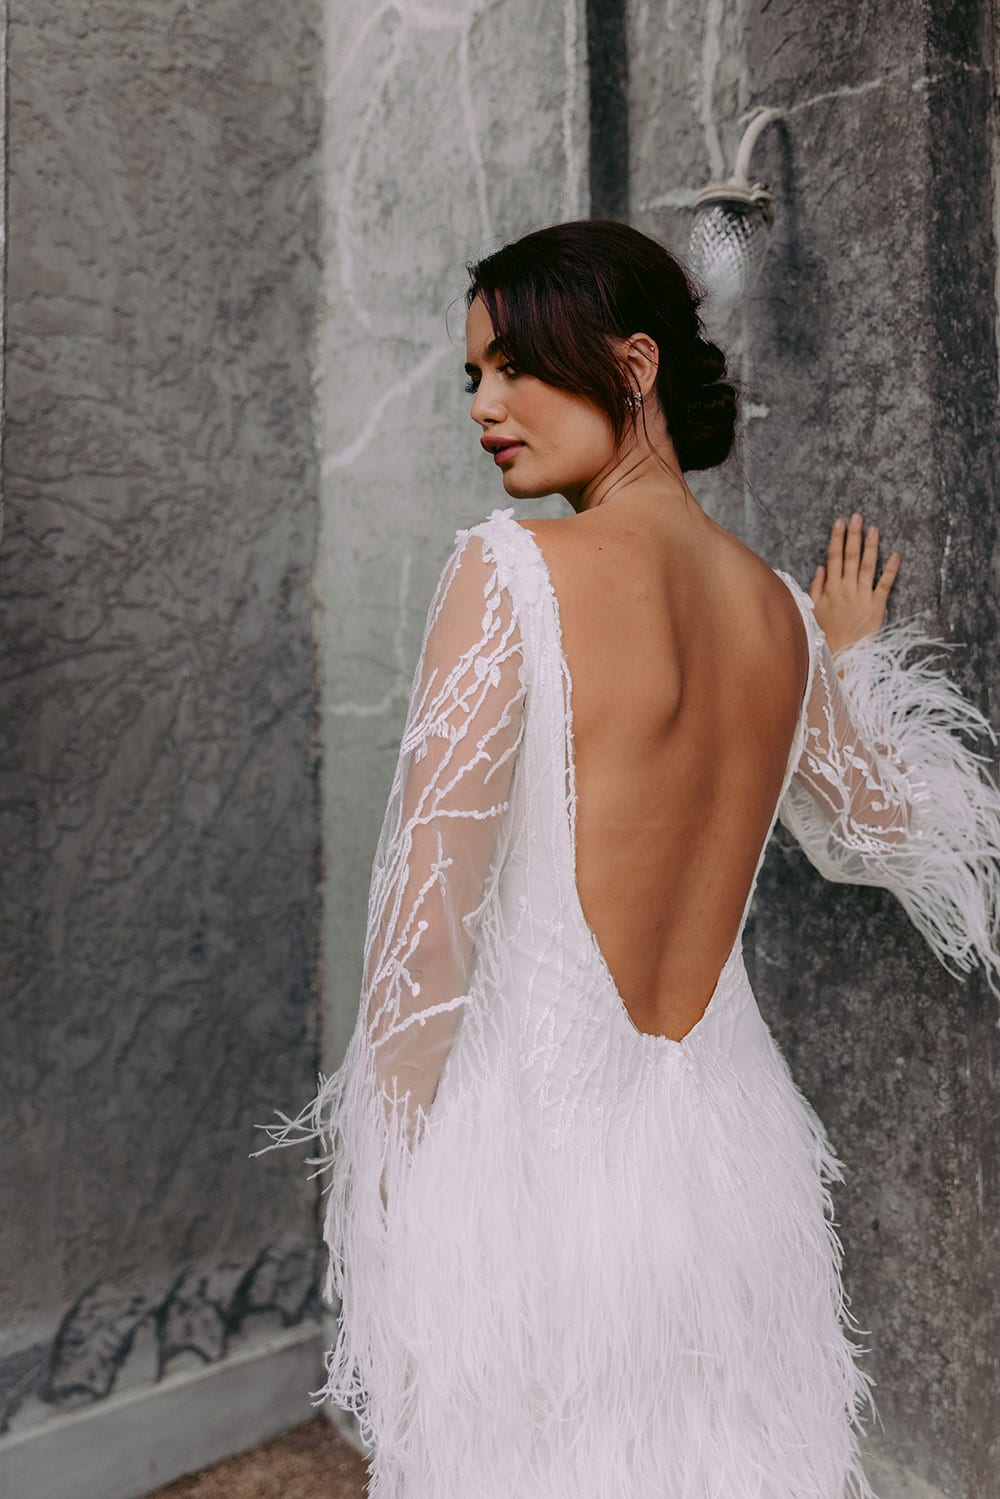 Nikora Wedding gown from Vinka Design - This sexy gown is sure to turn heads! Adorned with feathers that accentuate movement and bell sleeves that add flare, a high neckline, and low back. Model wearing gown facing away showing back of dress.